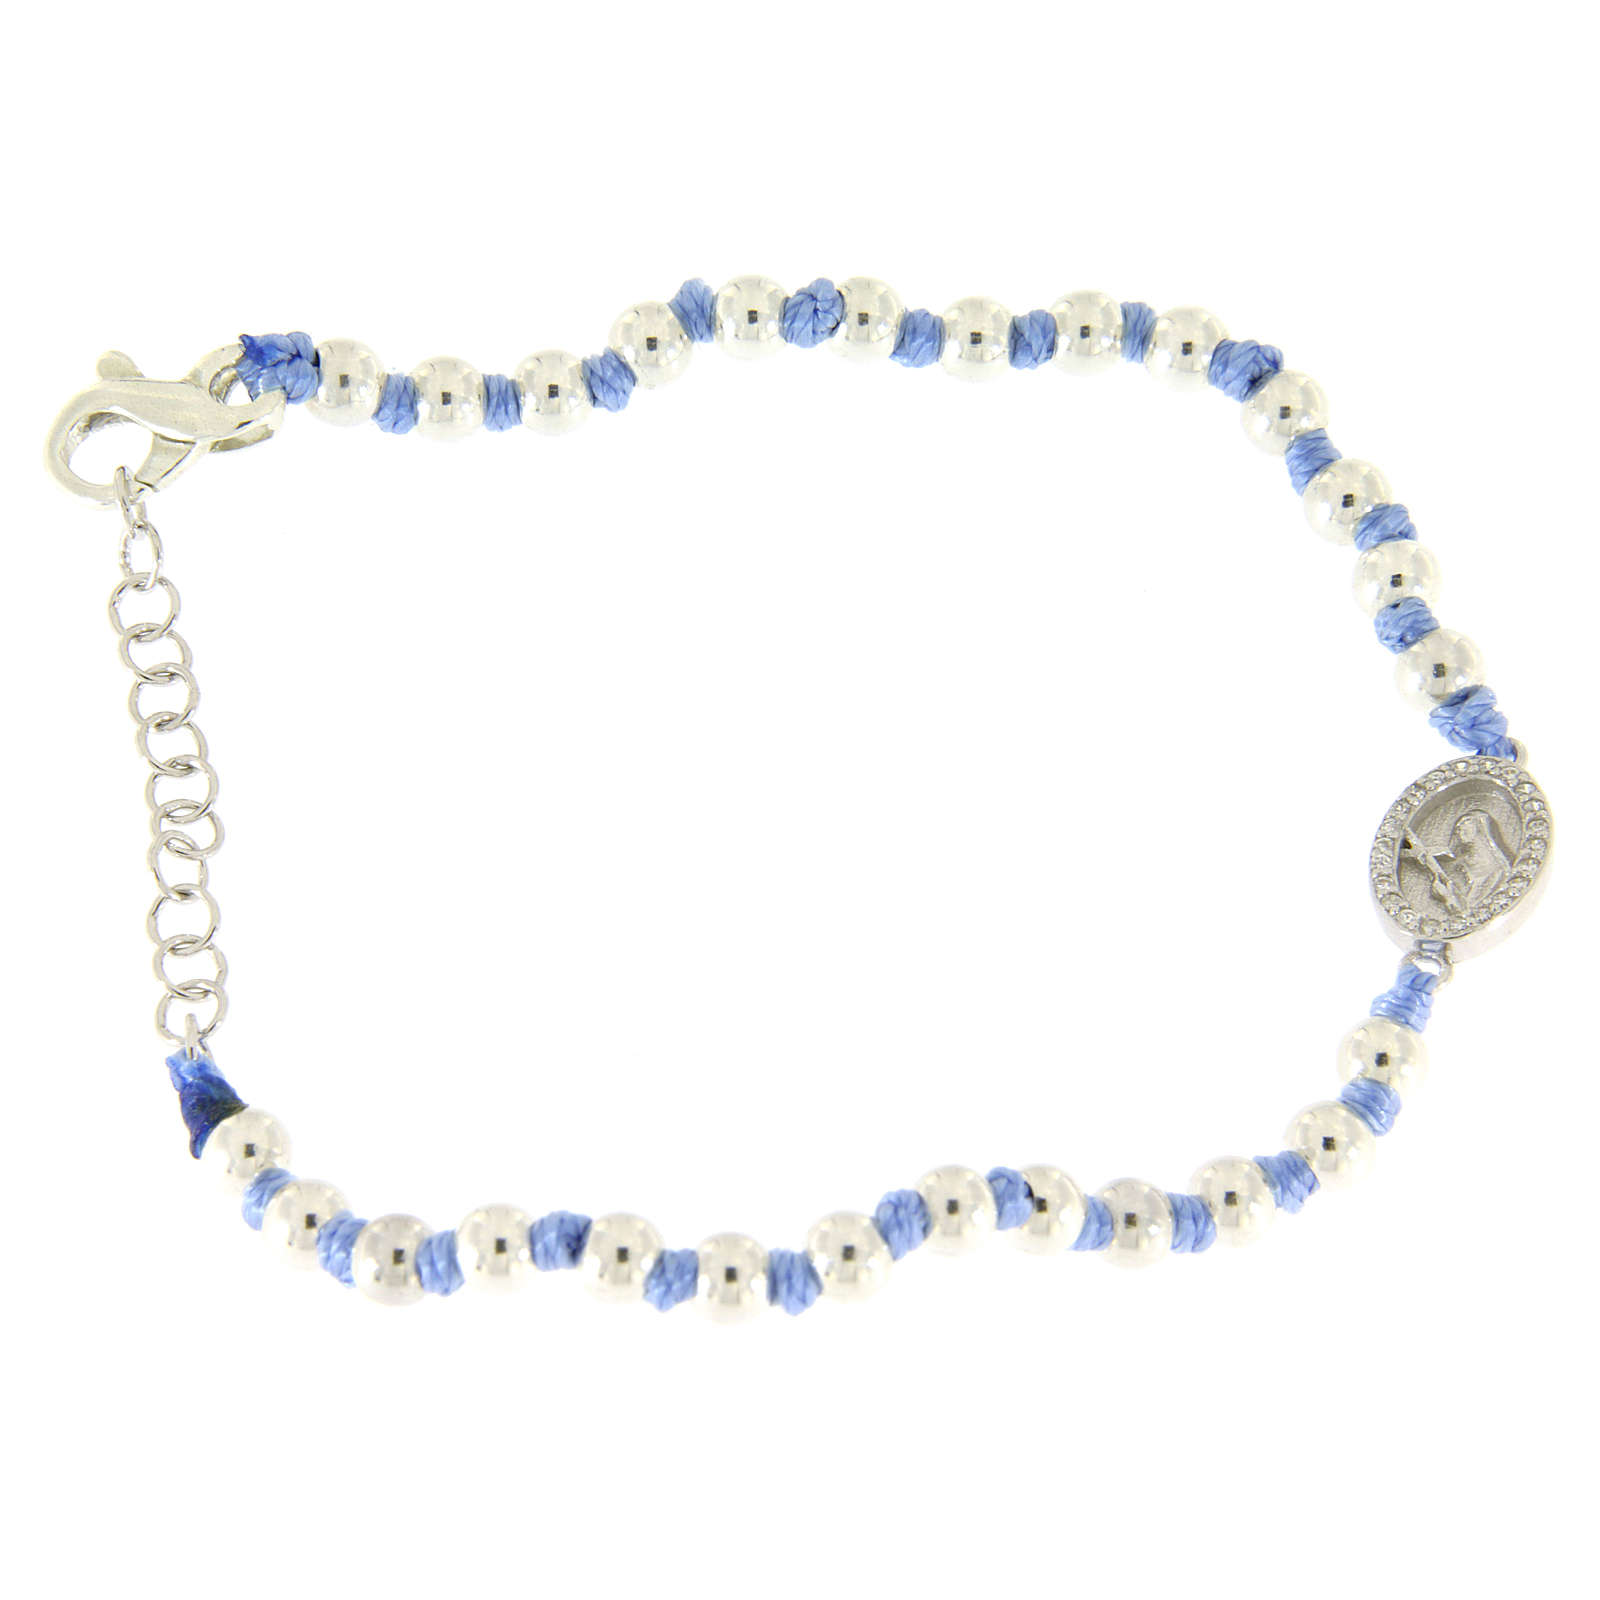 Bracelet with Saint Rita medalet in silver and white zircons, 3 mm spheres and light blue cotton knots 4